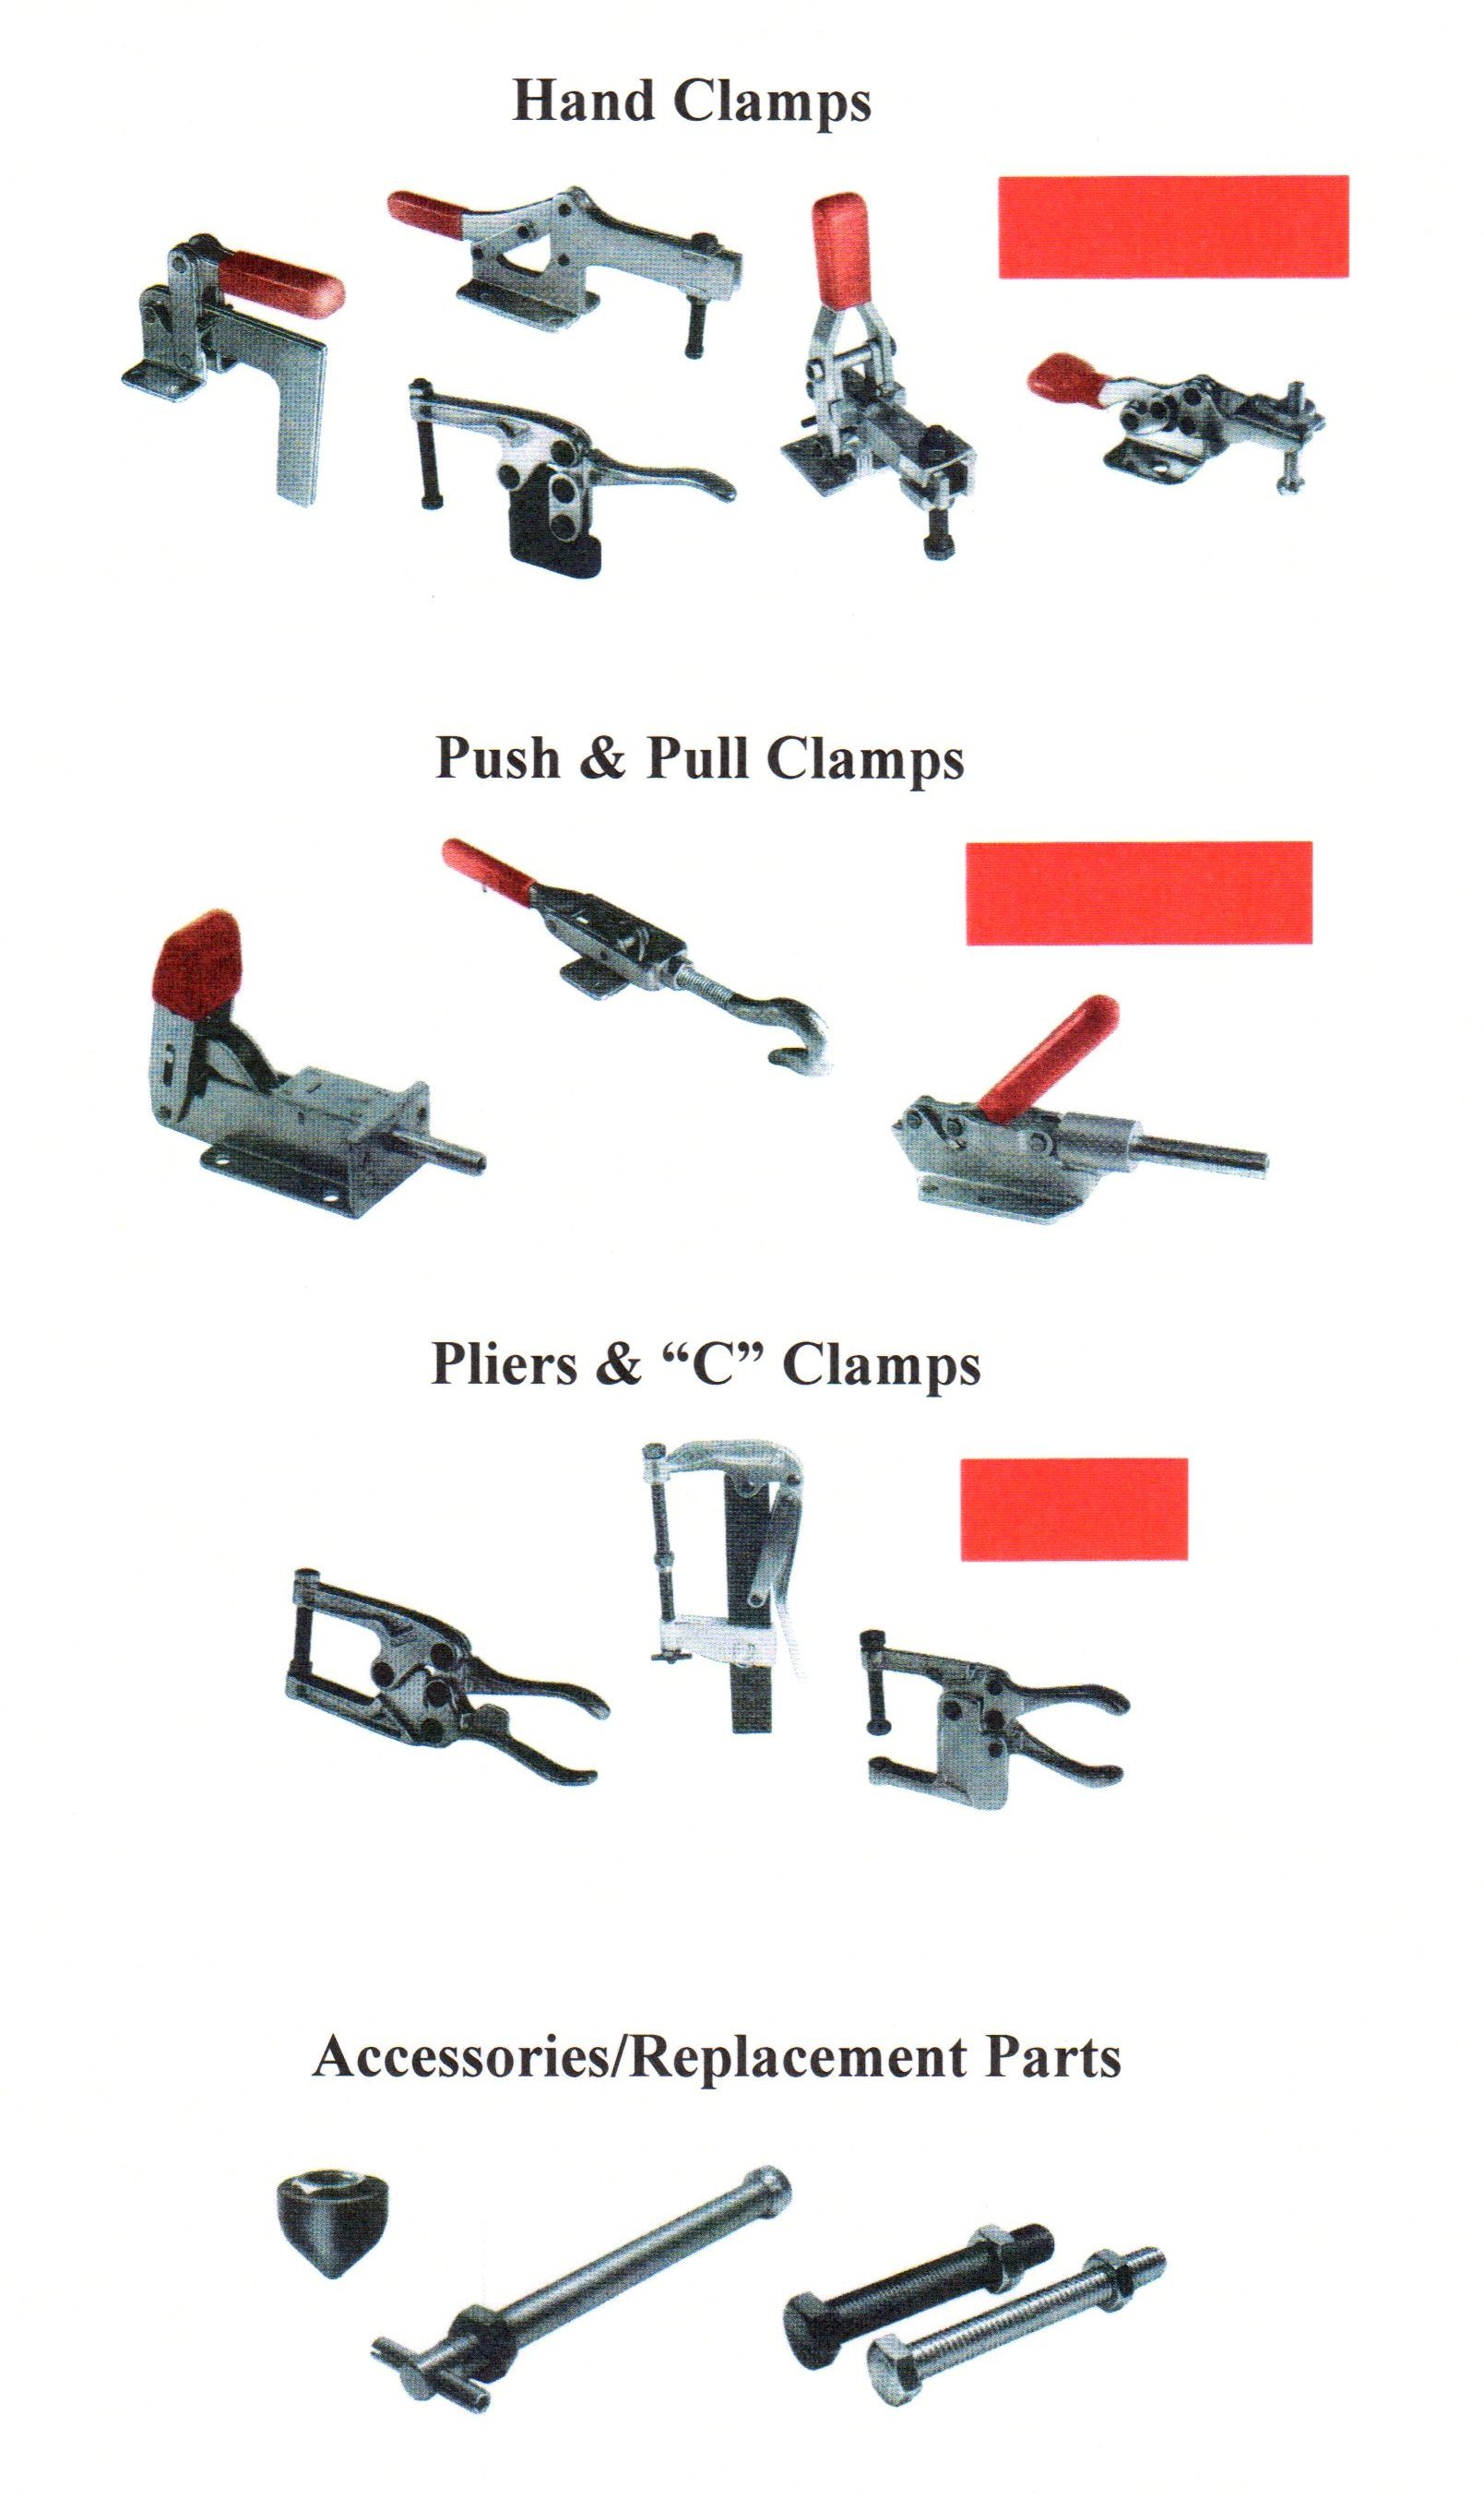 Hand Clamps